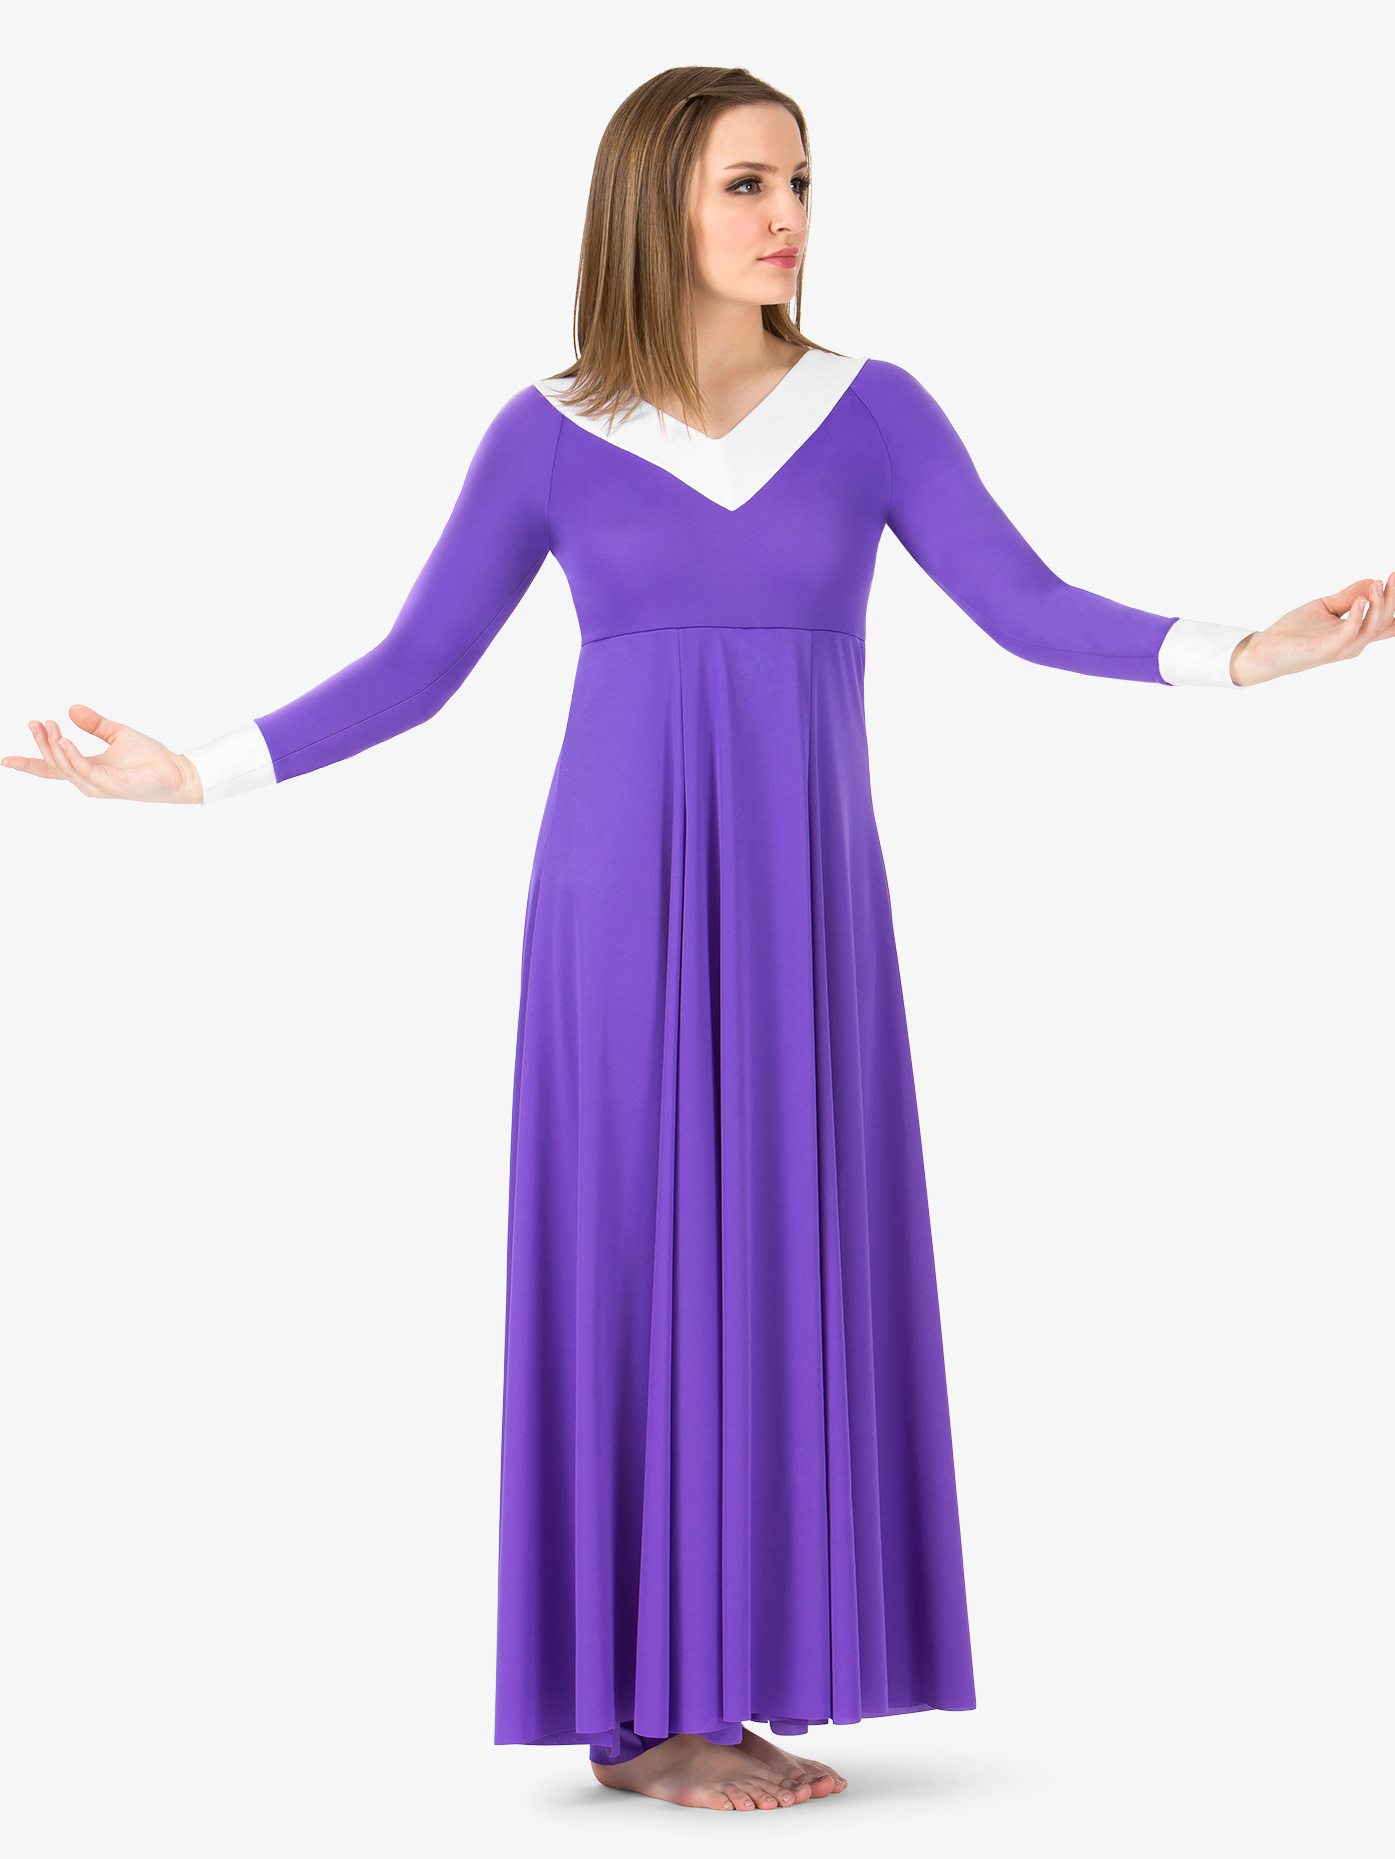 b1a461c839d Womens V Front Worship Jumpsuit - Style No BT5199. Loading zoom